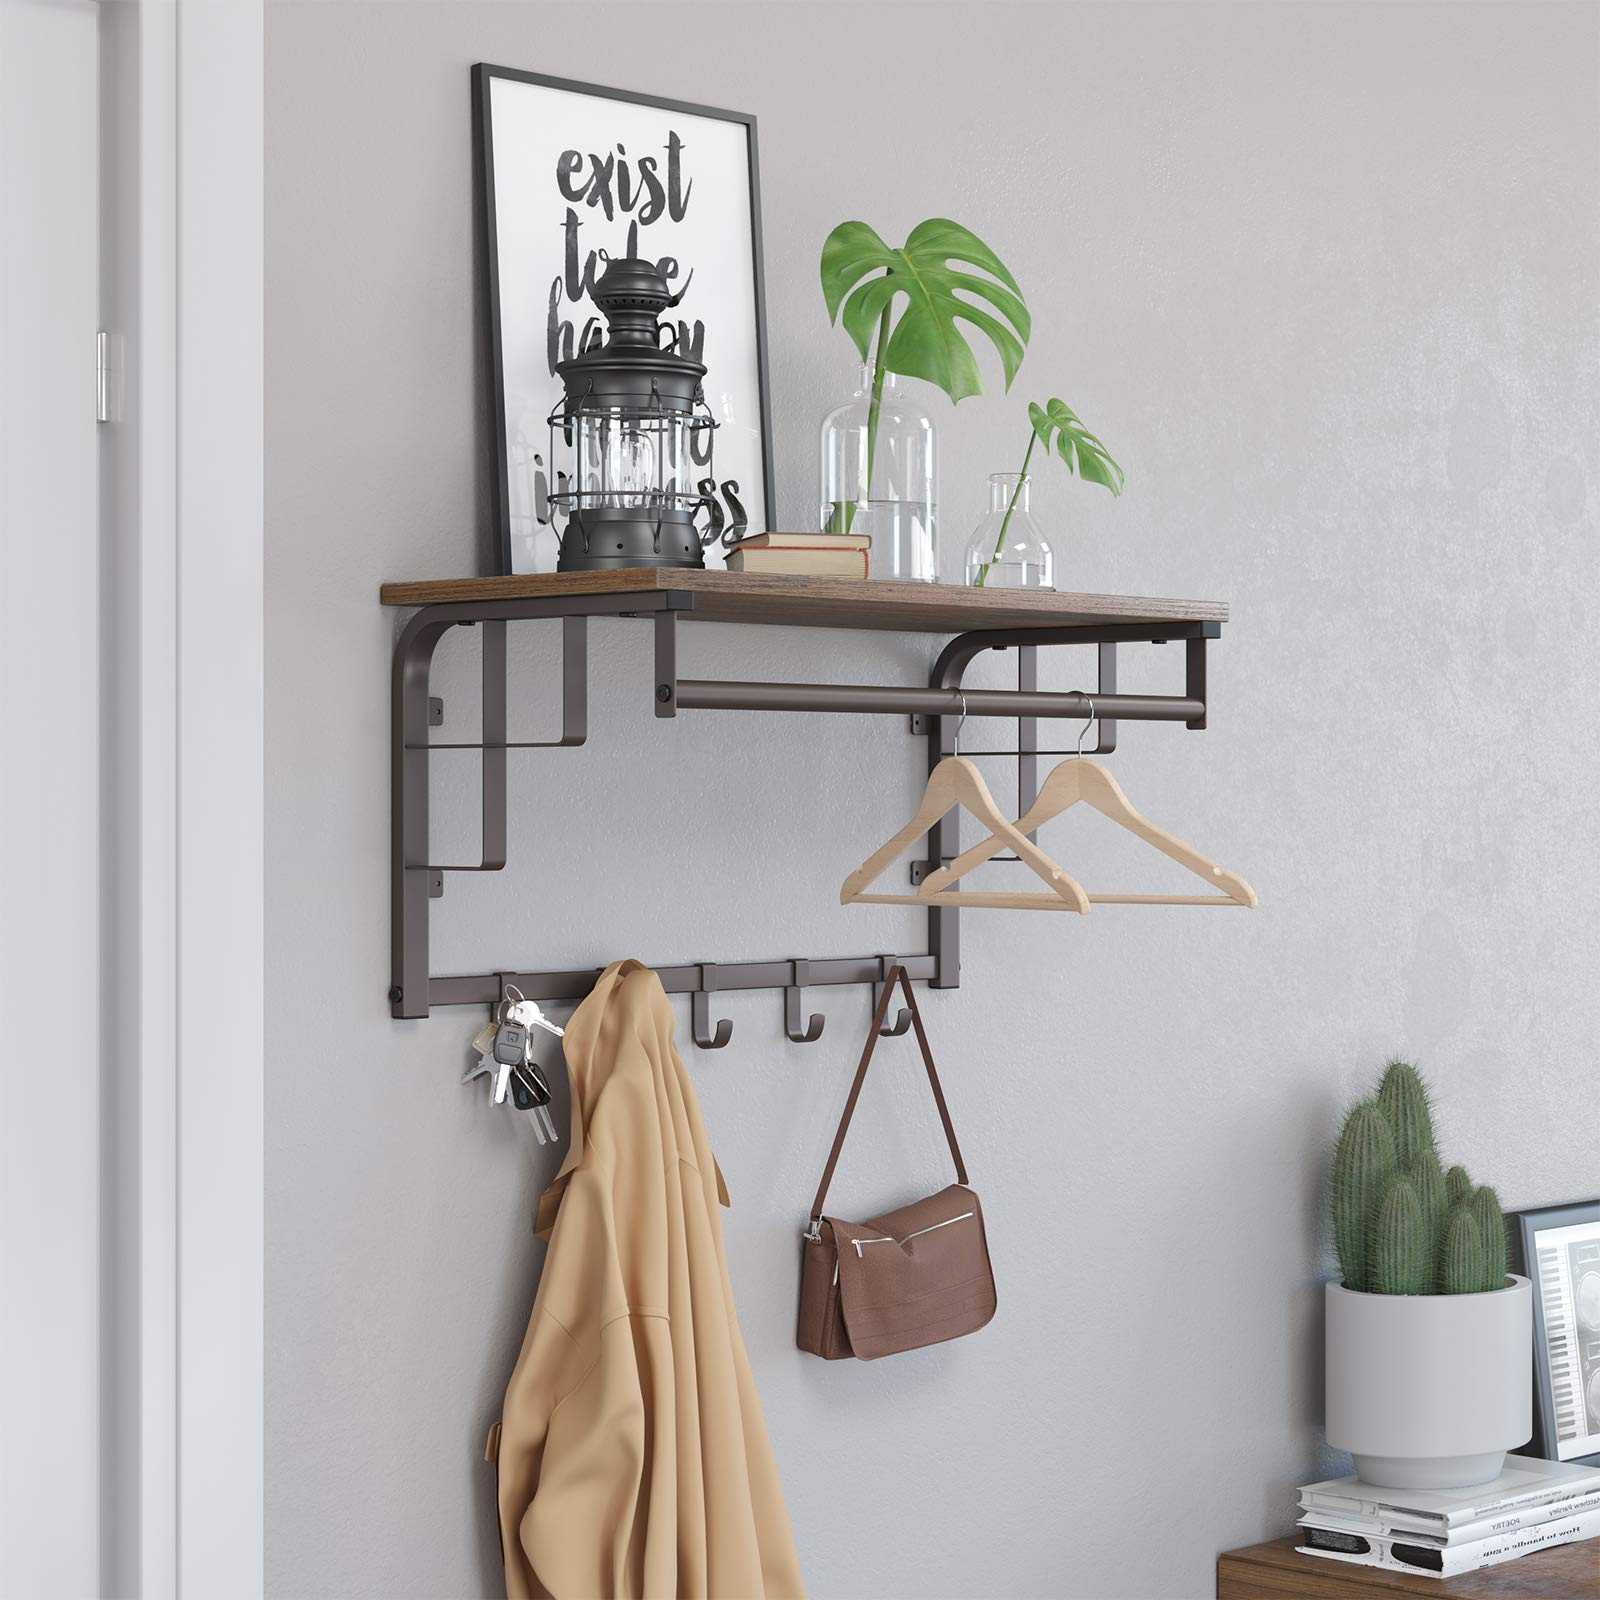 SONGMICS Vintage Coat Rack Shelf Wall Mounted, Coat Hooks Shelf with Hanging Rail, 5 Metal Removable Hooks and Storage Shelf for Entryway Hallway Bedroom Bathroom Living Room ULCR12AX by SONGMICS (Image #3)